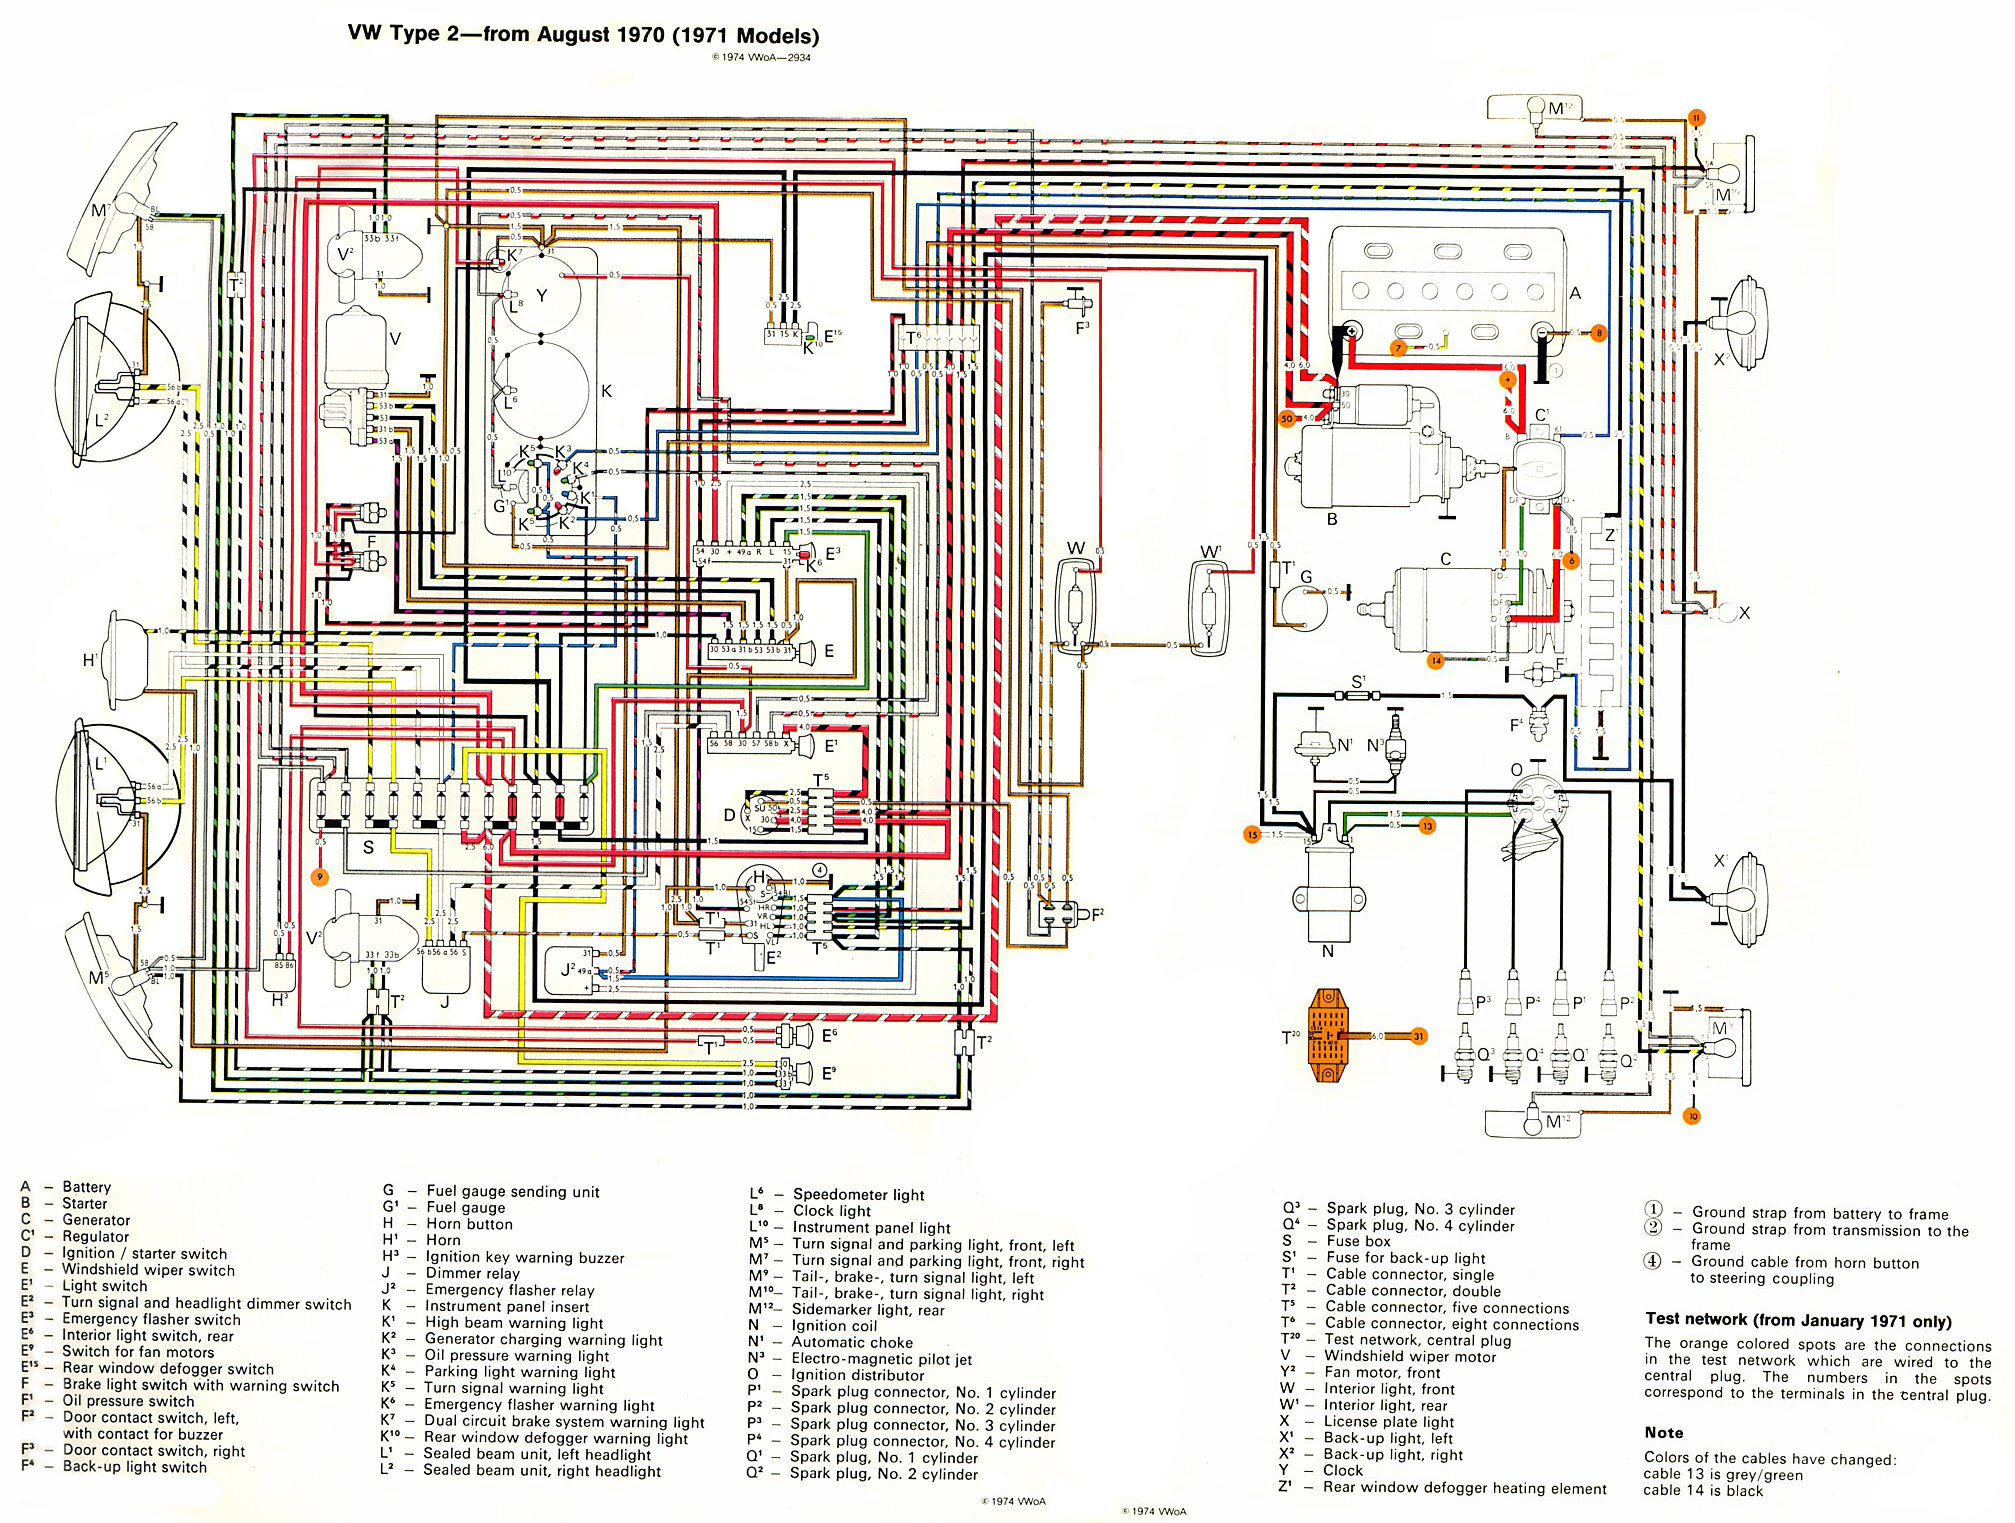 baybus_71_fixed thesamba com type 2 wiring diagrams 1990 corvette wiring diagram at gsmx.co